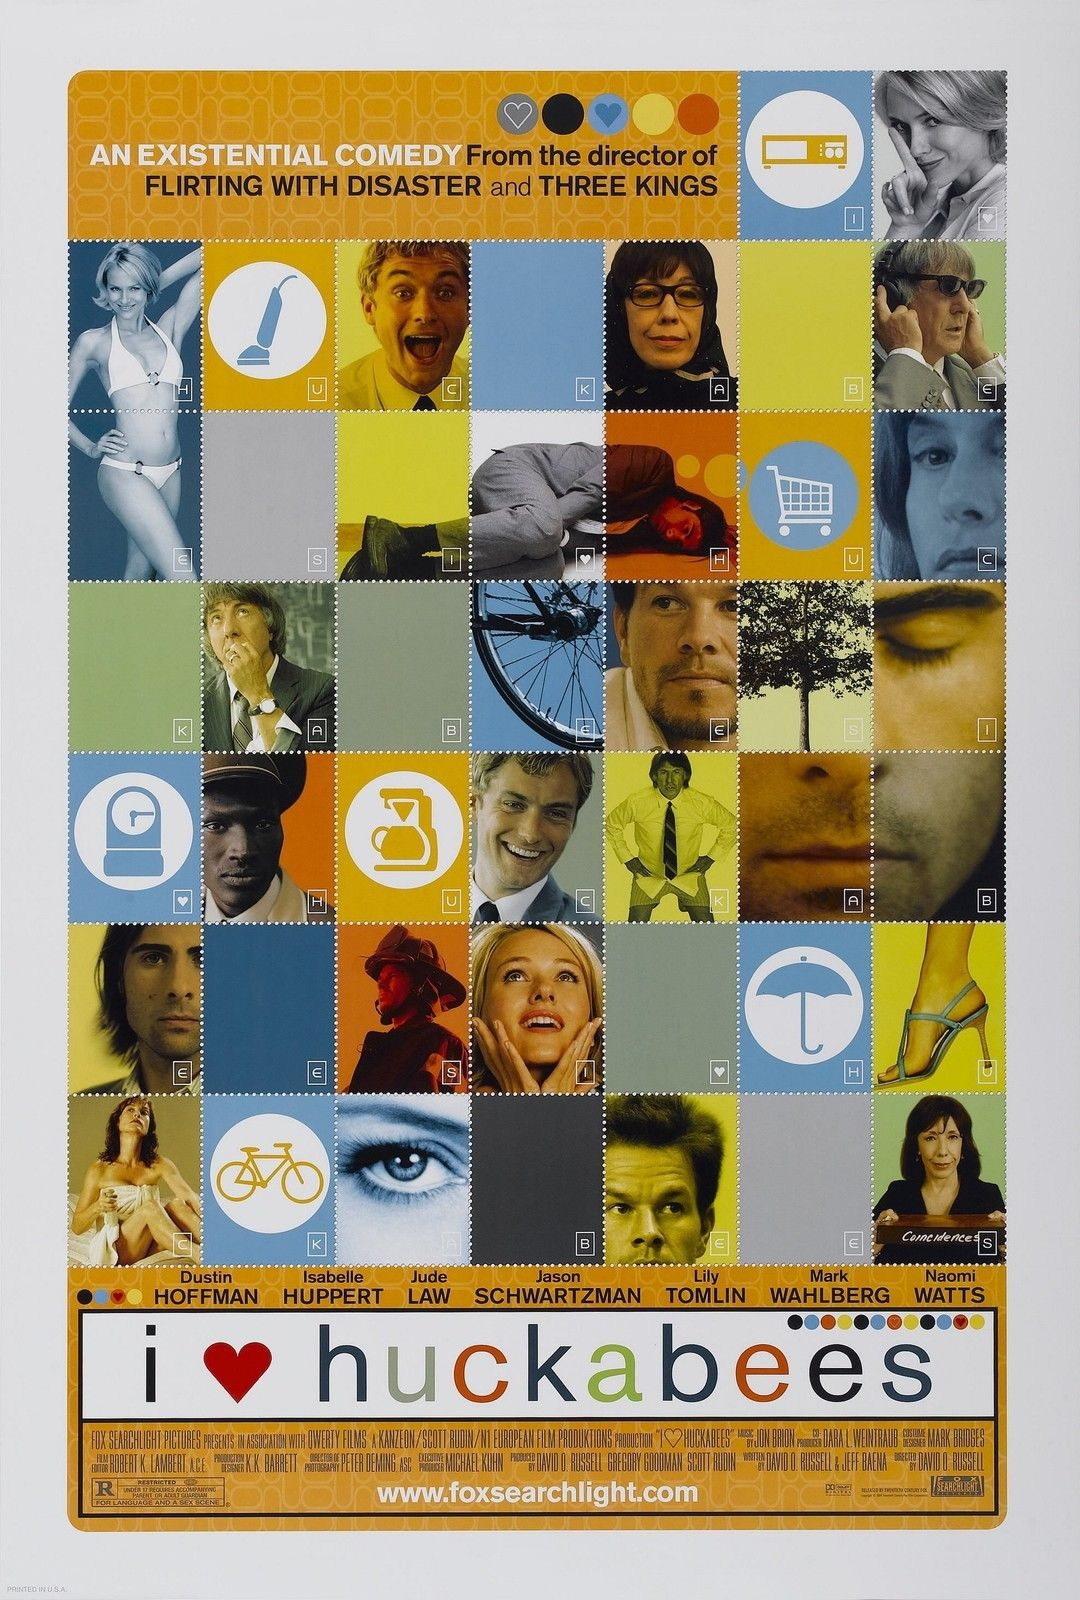 73294 I HEART HUCKABEES Movie Wall Print Poster Affiche